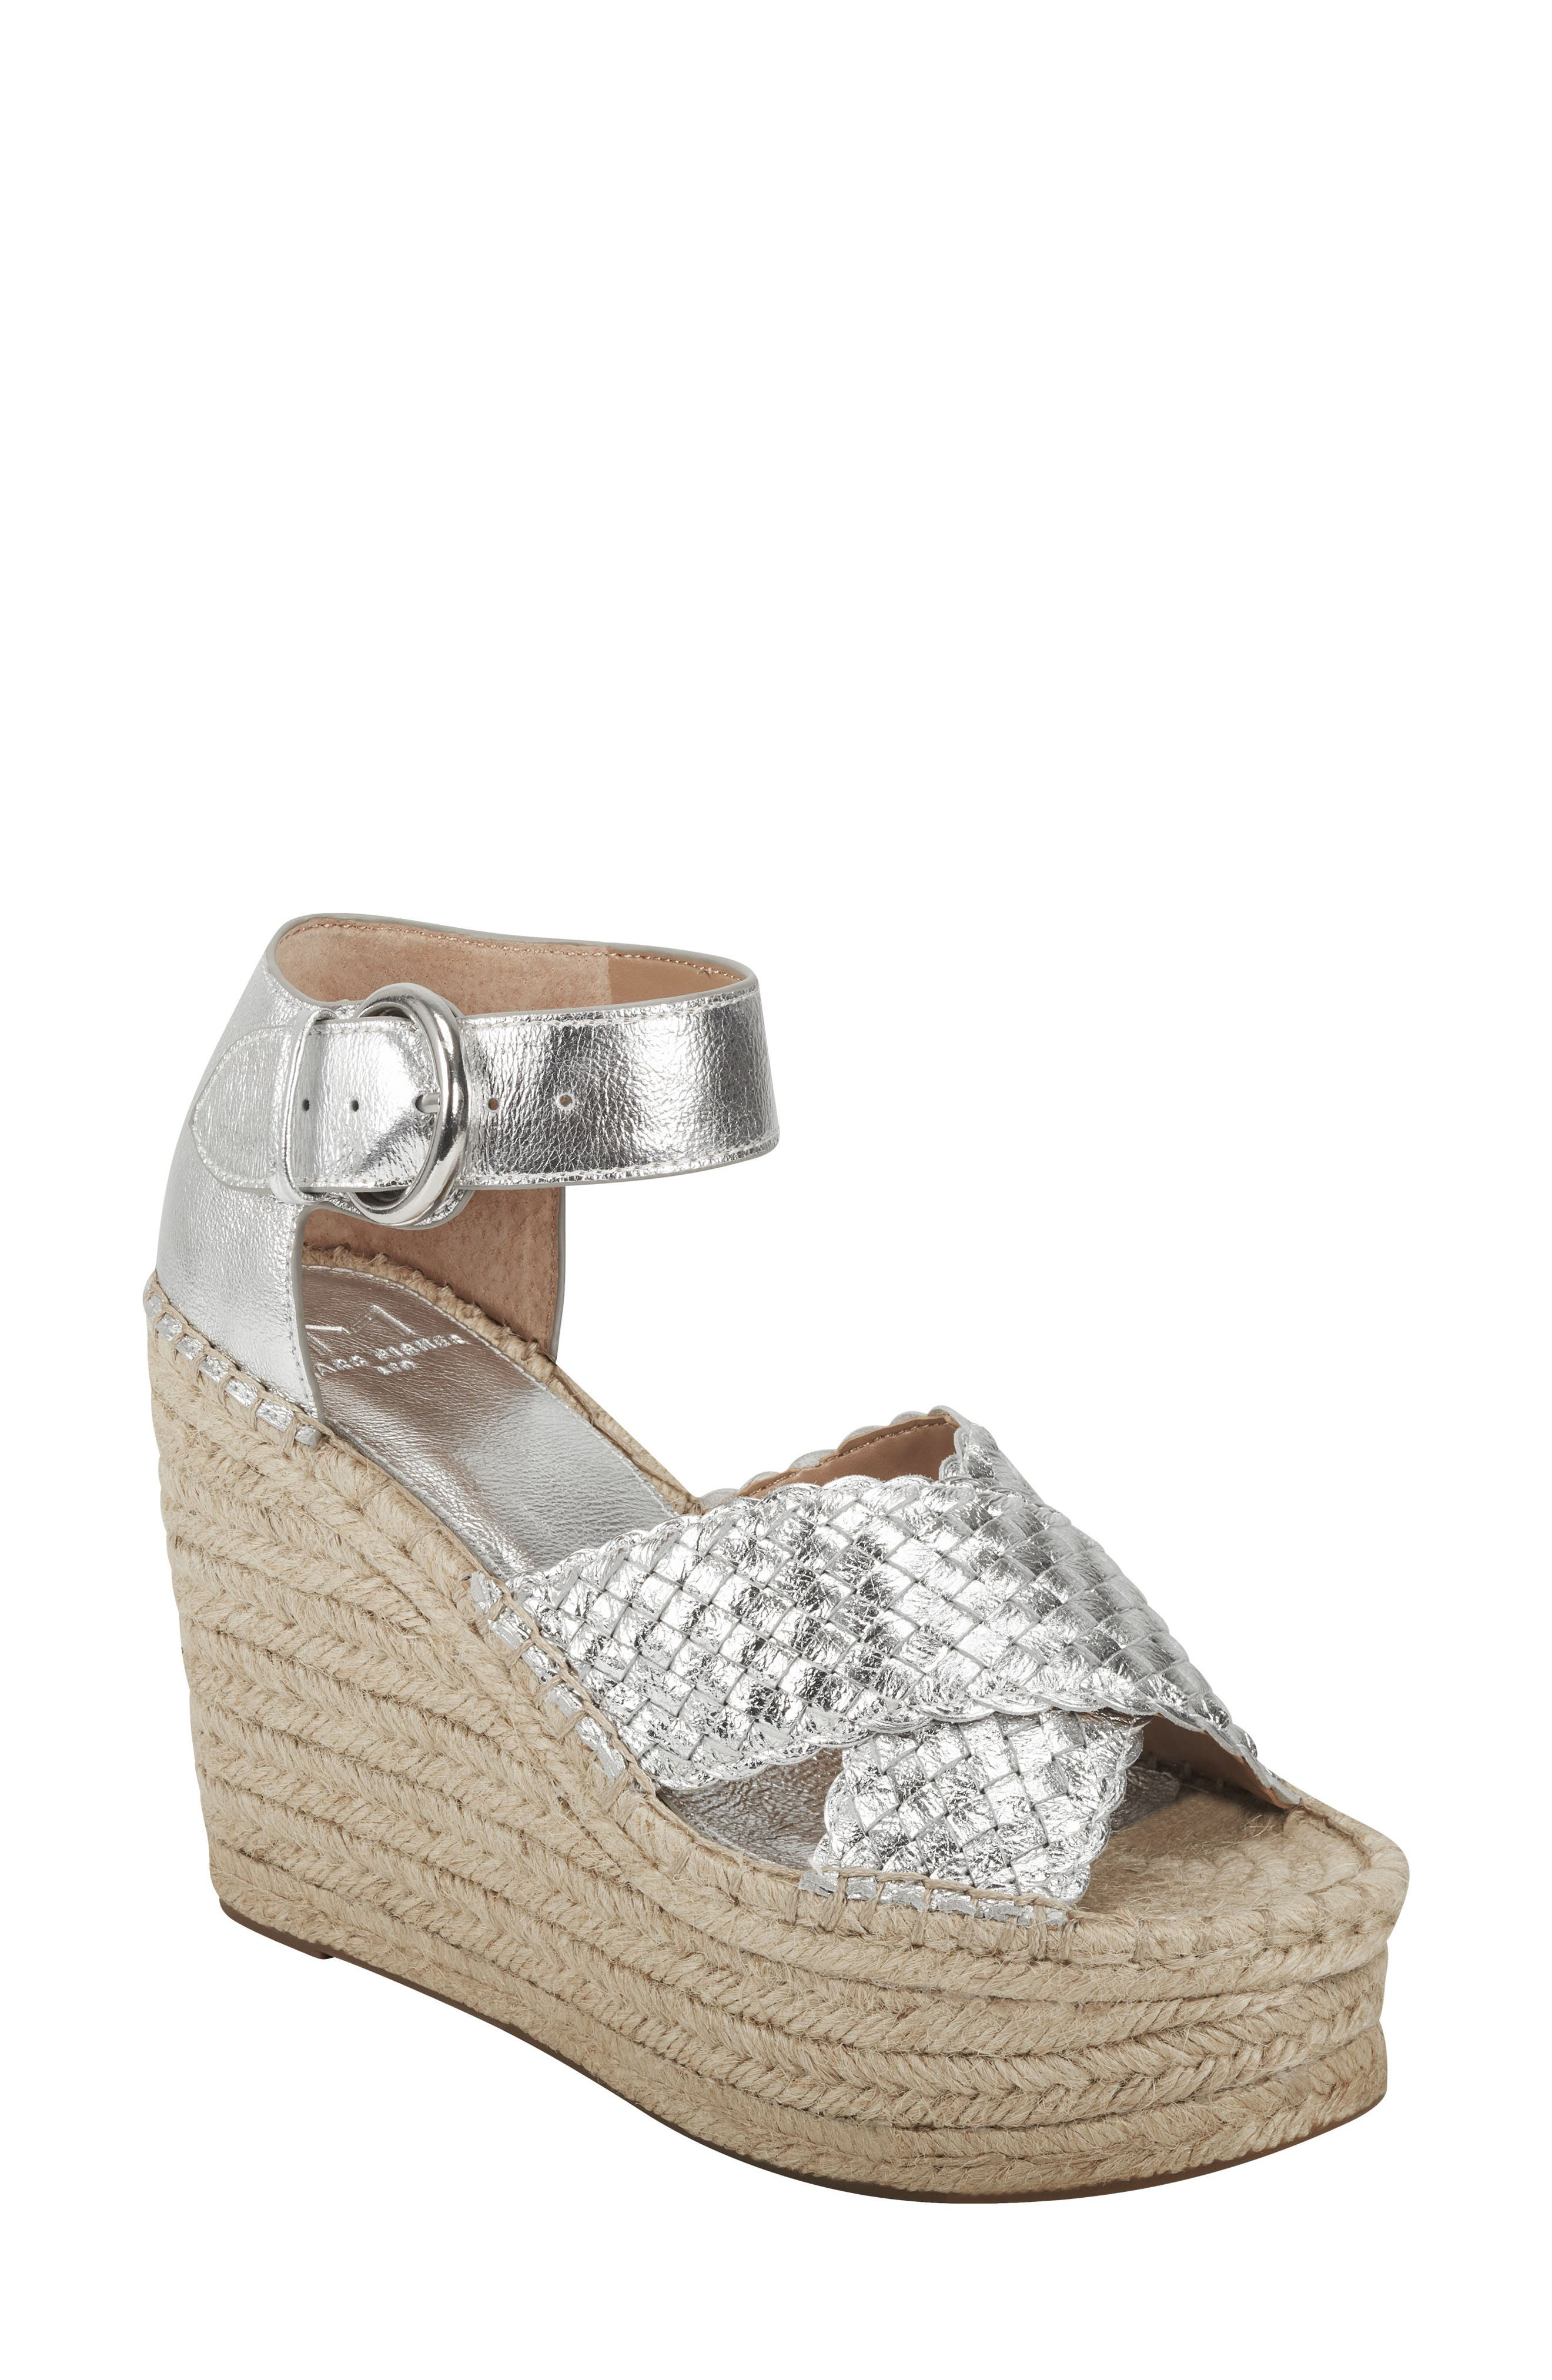 A sky-high espadrille-style wedge and platform call attention to a breezy sandal featuring basket-woven straps that crisscross at the toe. Style Name: Marc Fisher Ltd Aylon Espadrille Sandal (Women). Style Number: 6003556. Available in stores.